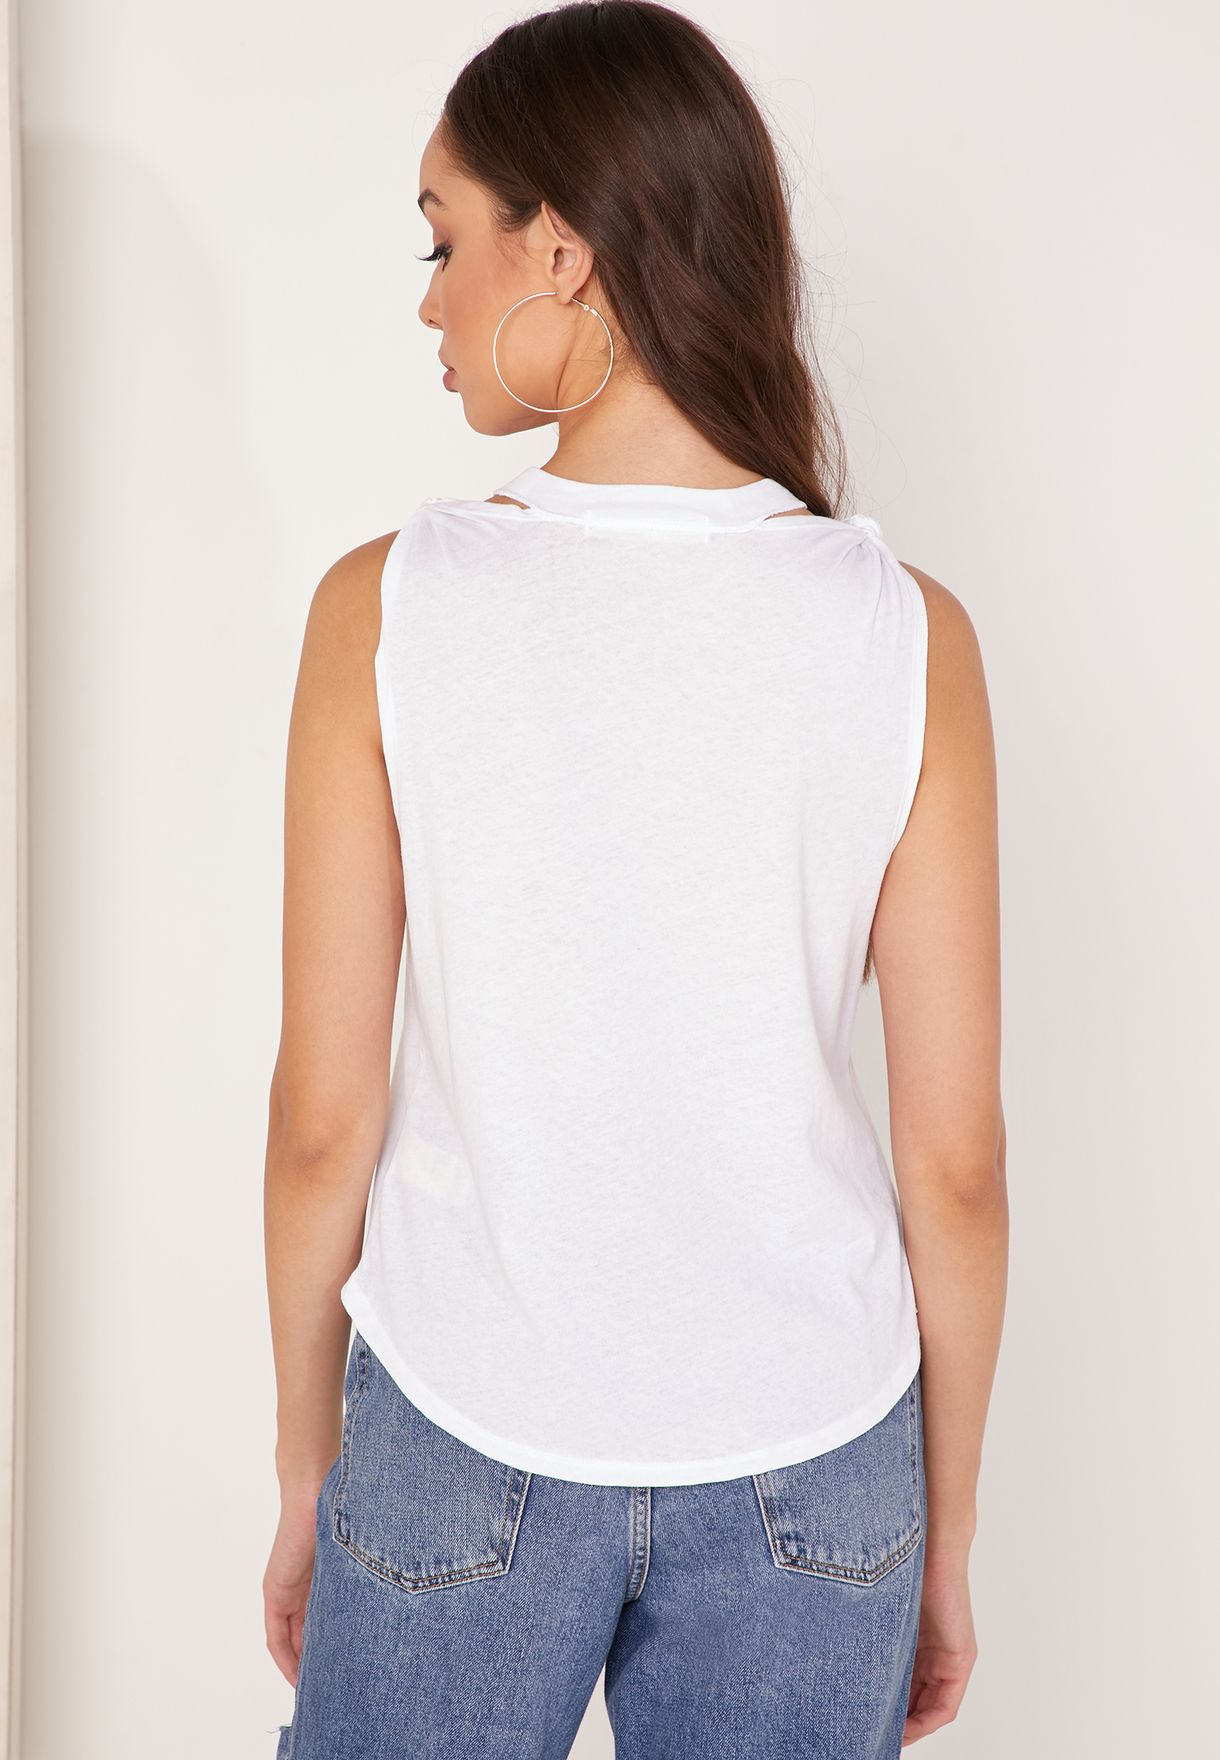 The Twist Cut Out Neck Tank Top